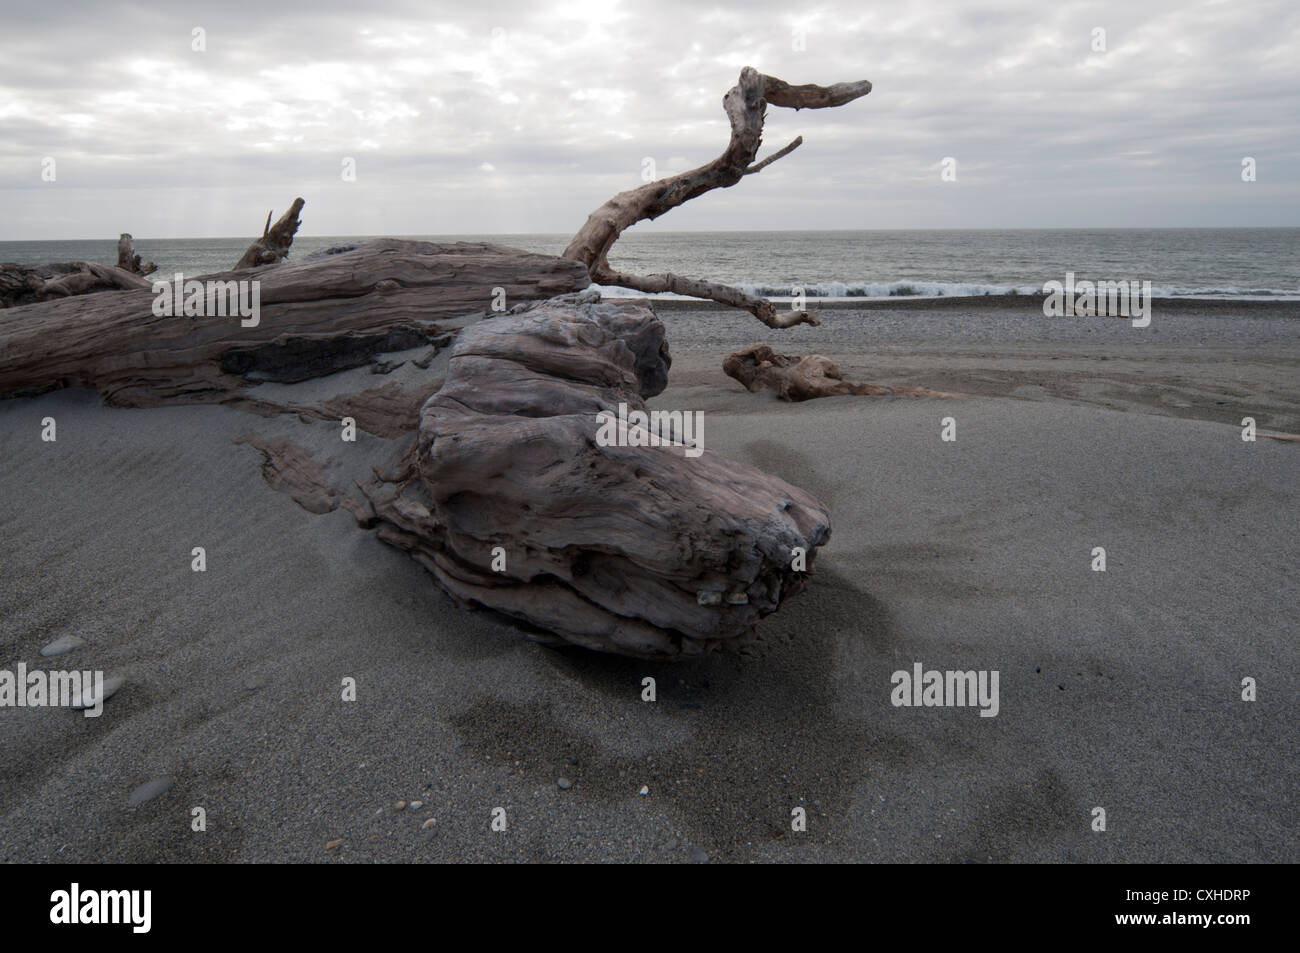 The sea sculptured fantastic structures in this deadwood near Ship Creek in New Zealand's West Coast.  Treibholz - Stock Image